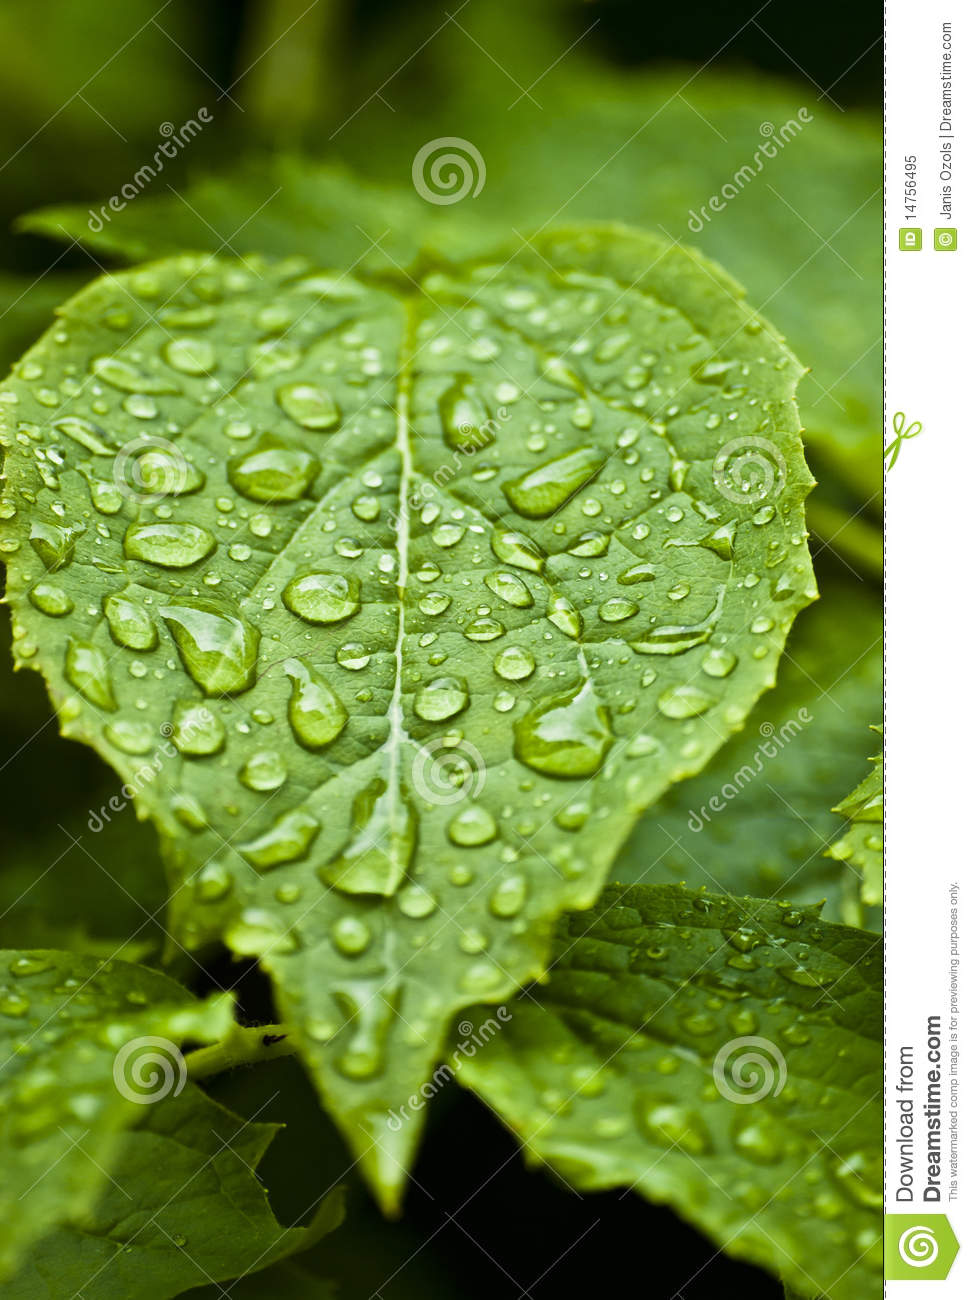 Beautiful Leaf Hd Wallpaper Leaf With Rain Drops Royalty Free Stock Photo Image